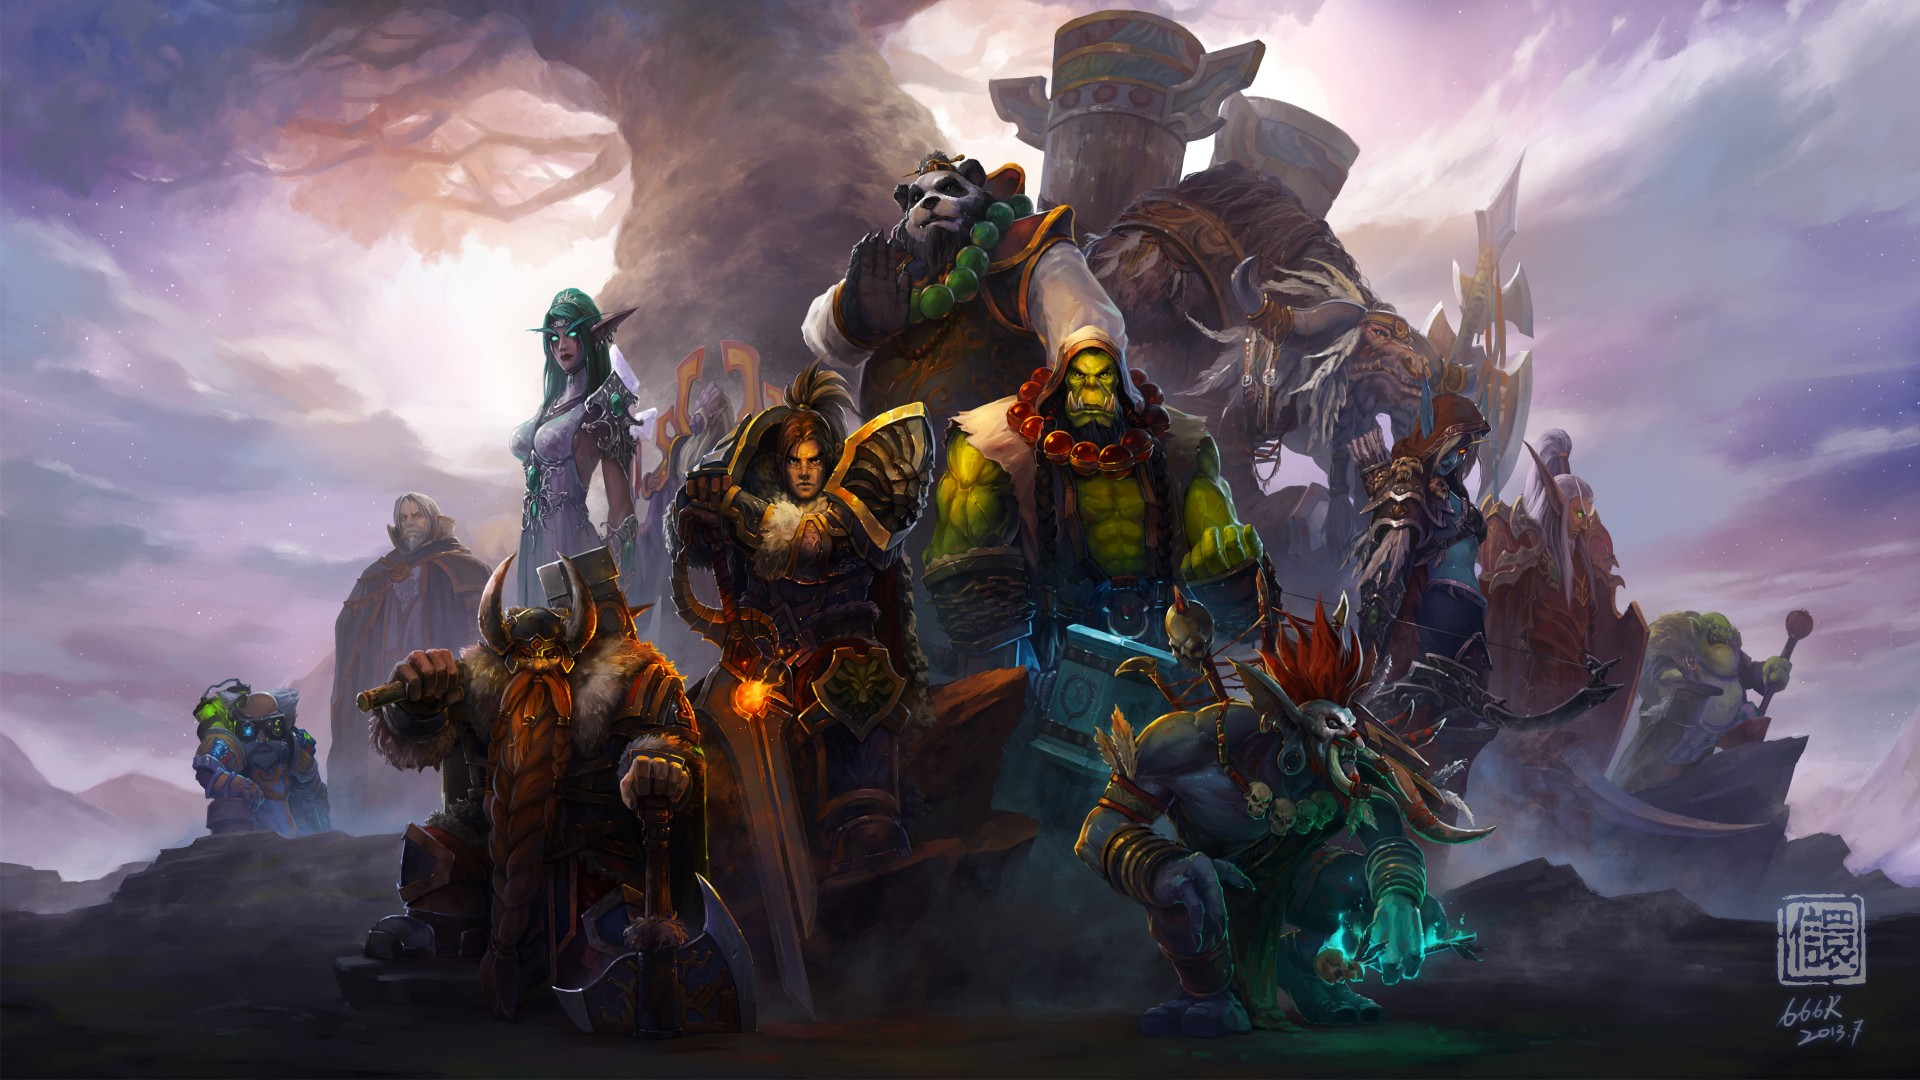 Popular Wallpapers For Iphone 5 World Of Warcraft Characters 4k Wallpapers Hd Wallpapers